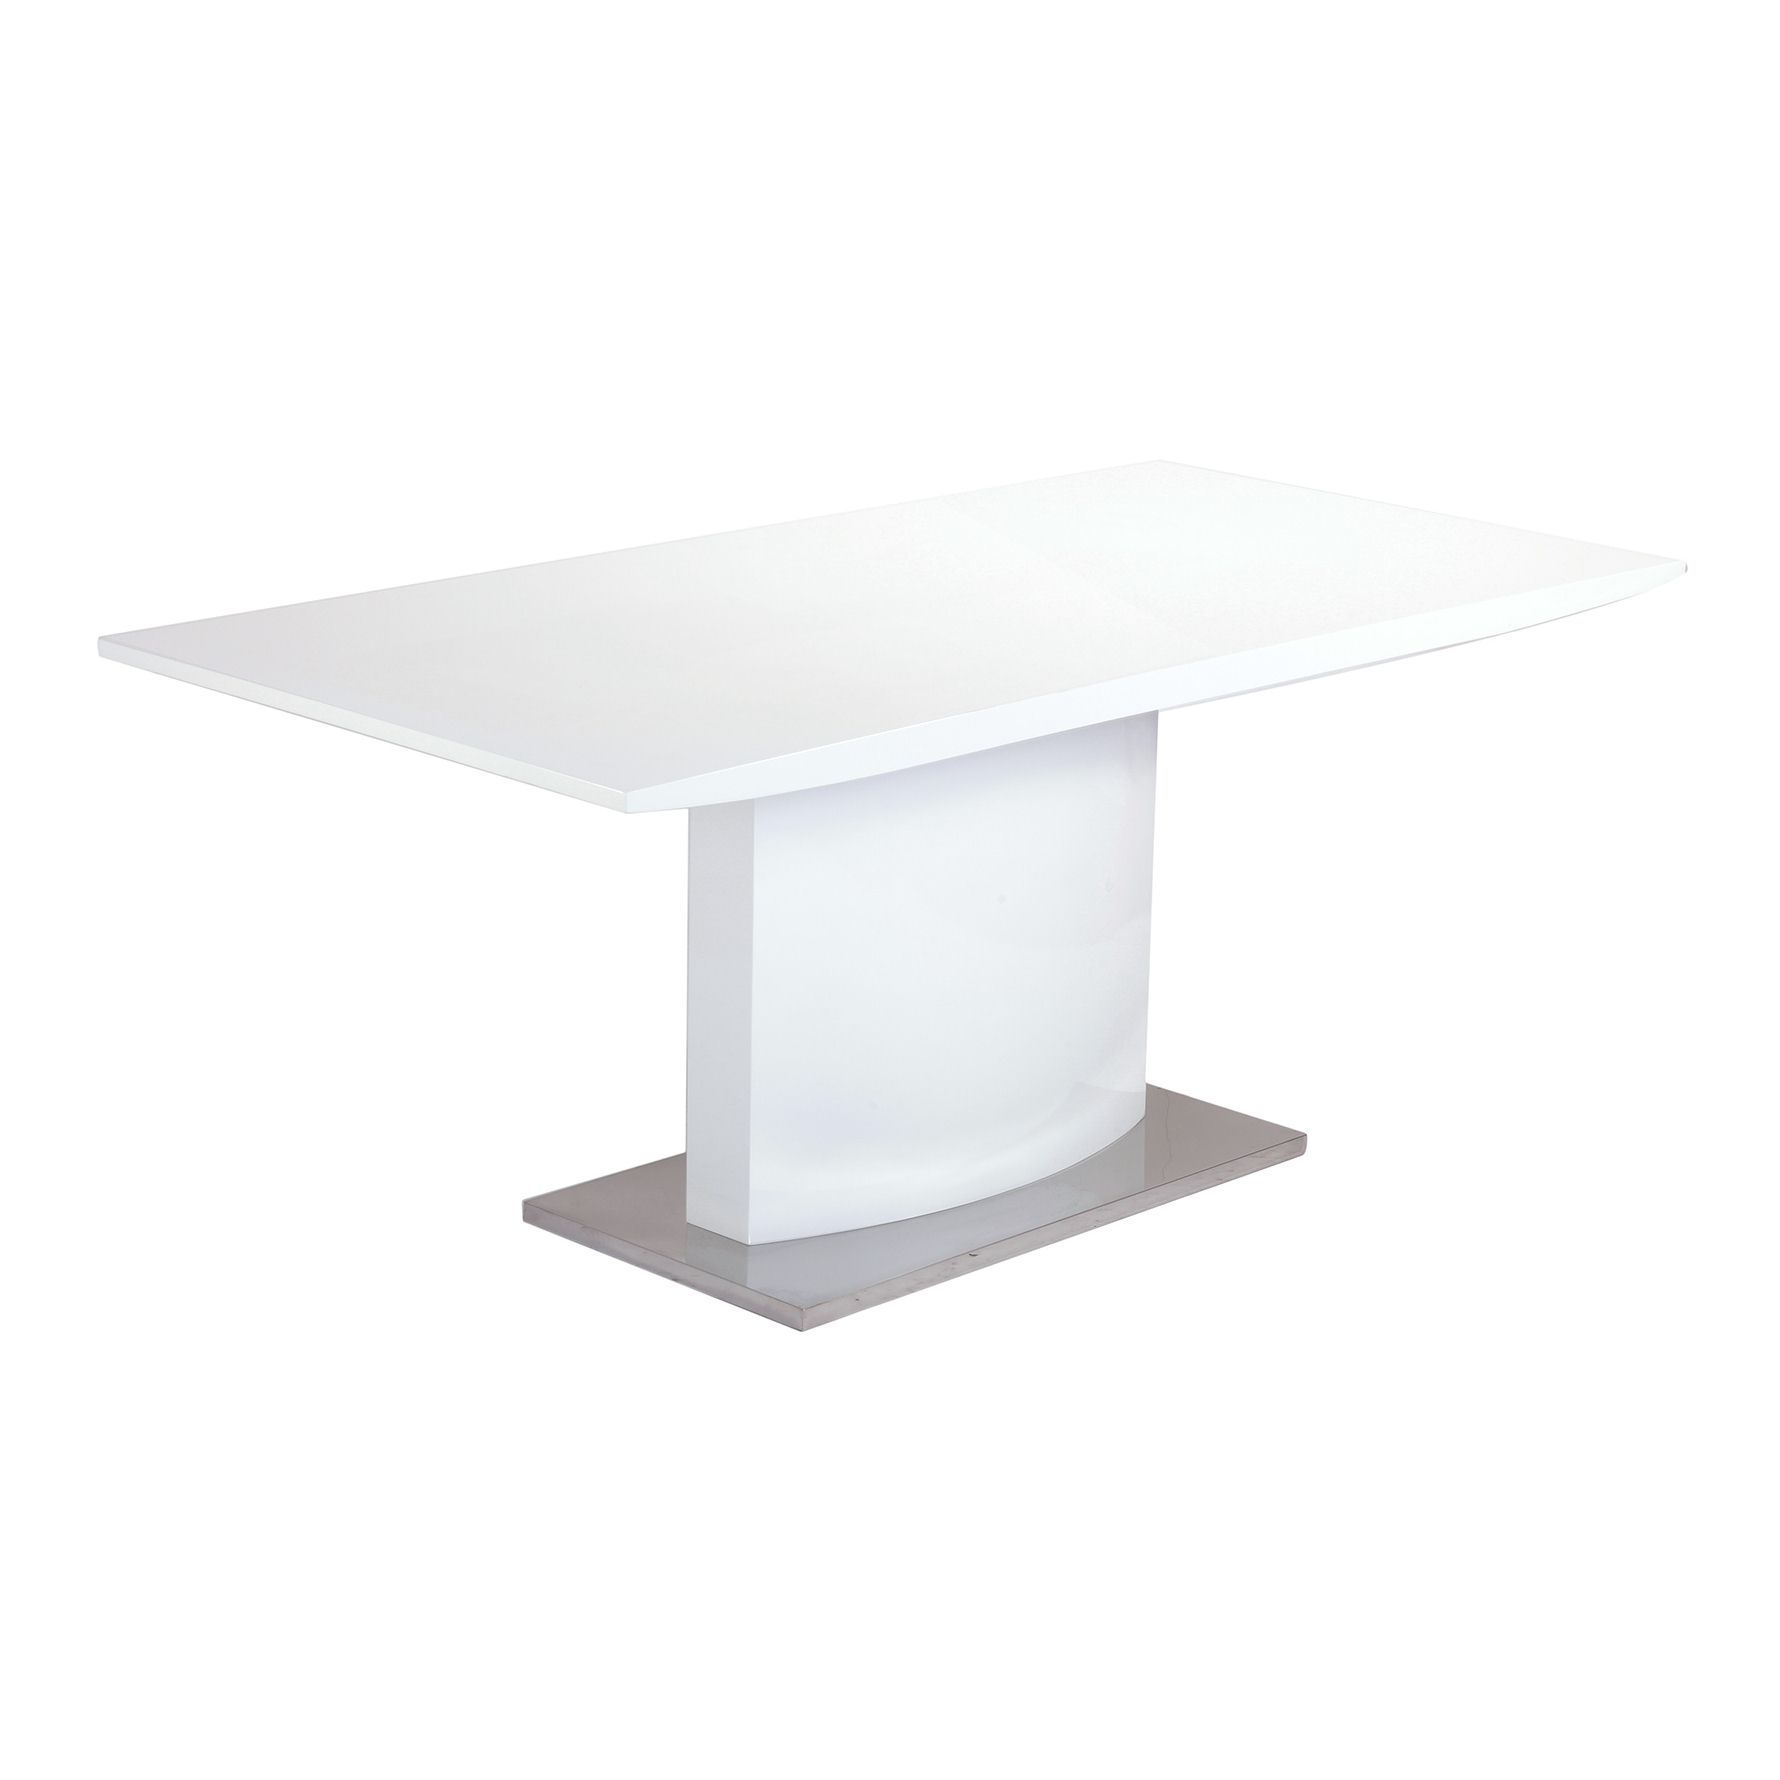 Deco in paris table a manger laquee blanche california for Table a manger blanche